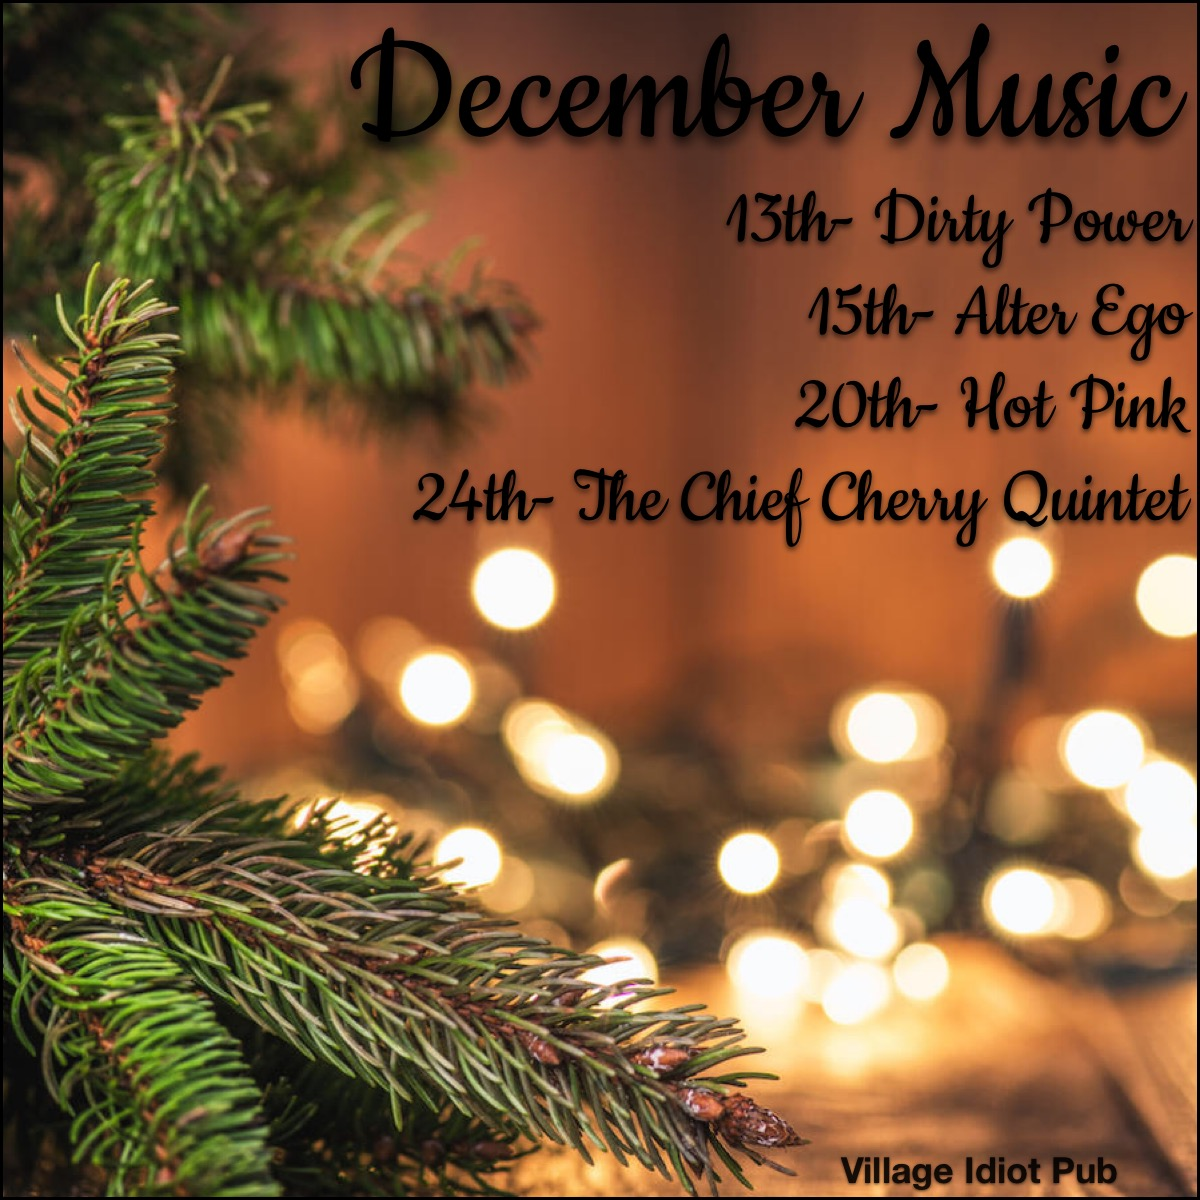 December Music at the Village Idiot Pub Cocoa Florida